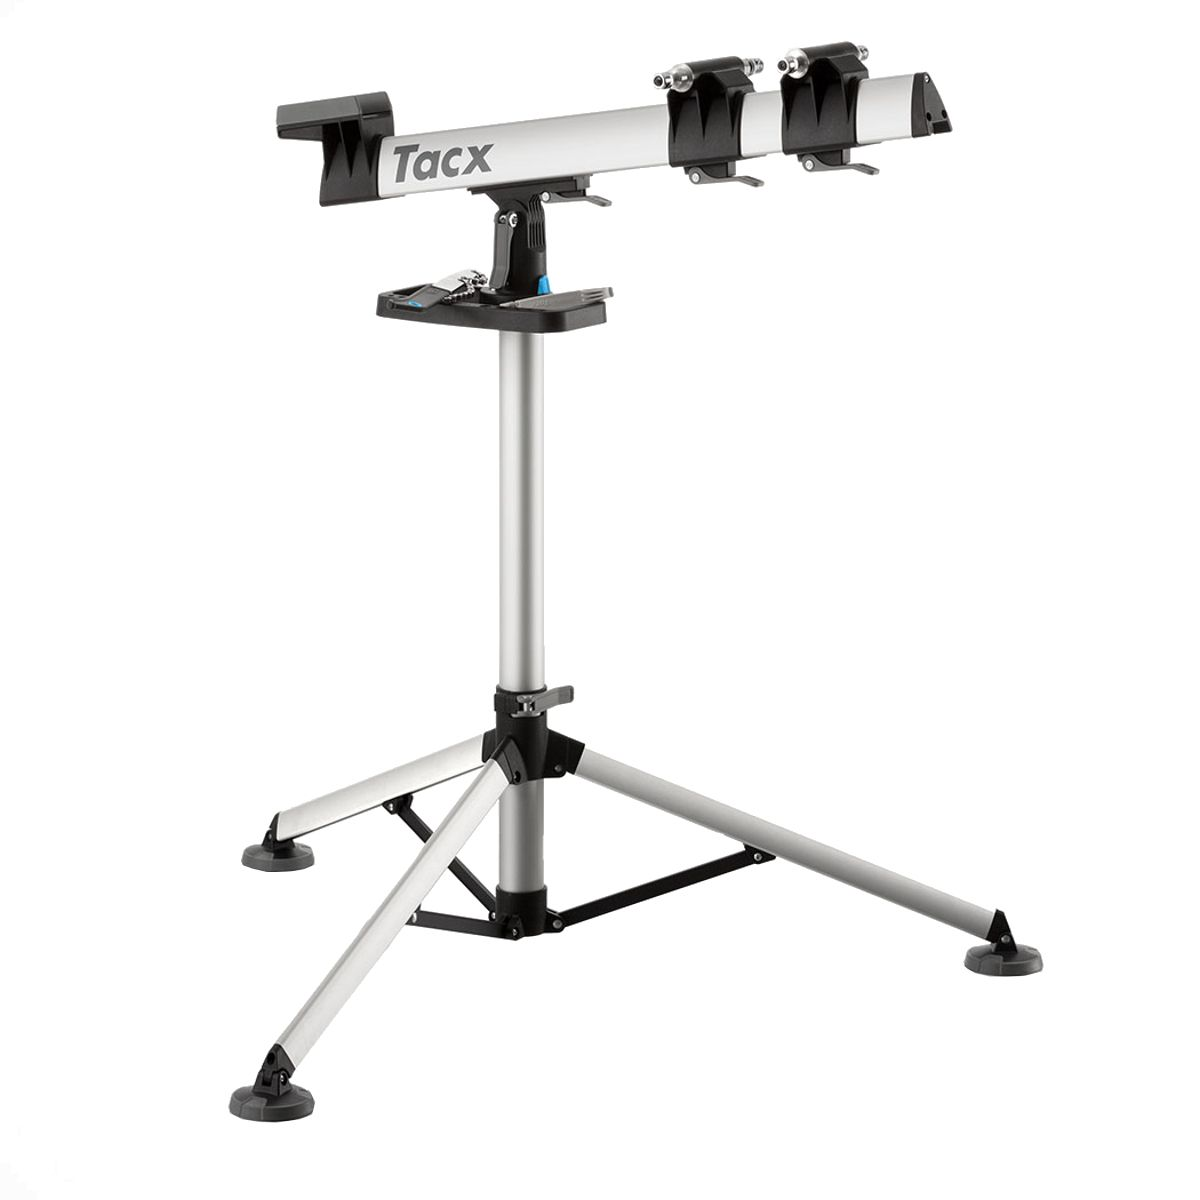 Spider Team T3350 assembly stand